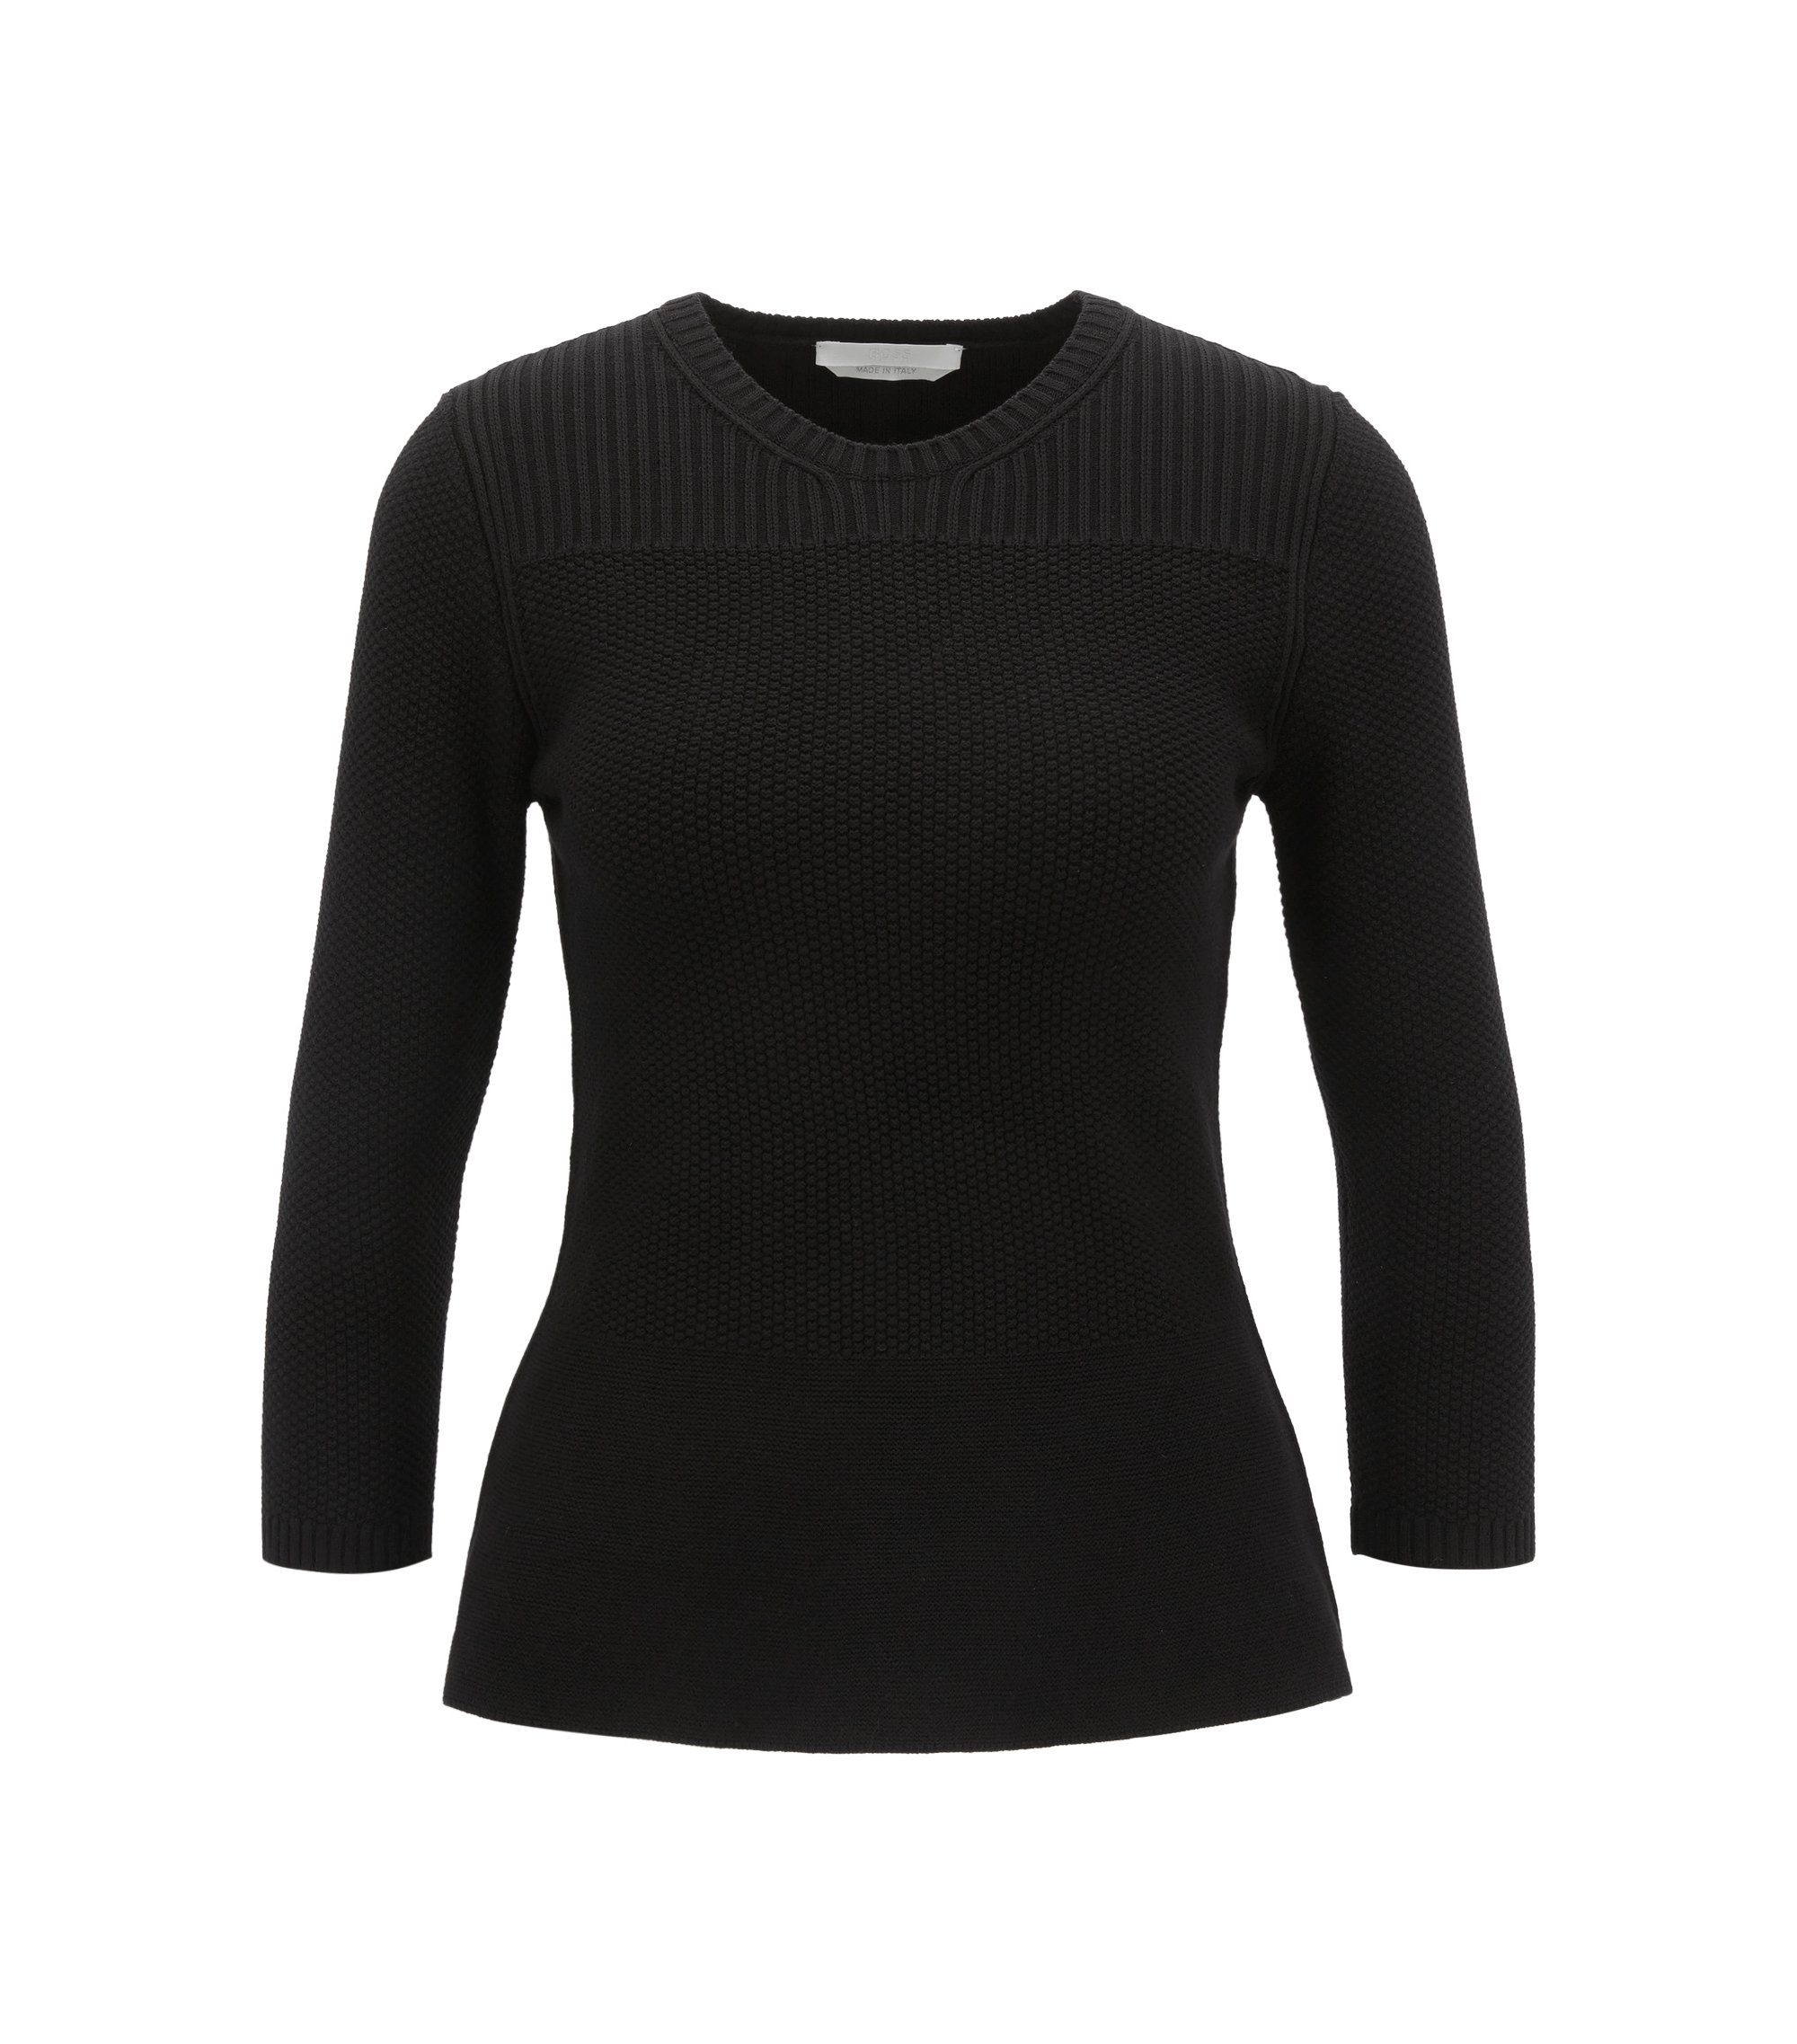 Peplum sweater with three-quarter-length sleeves, Black